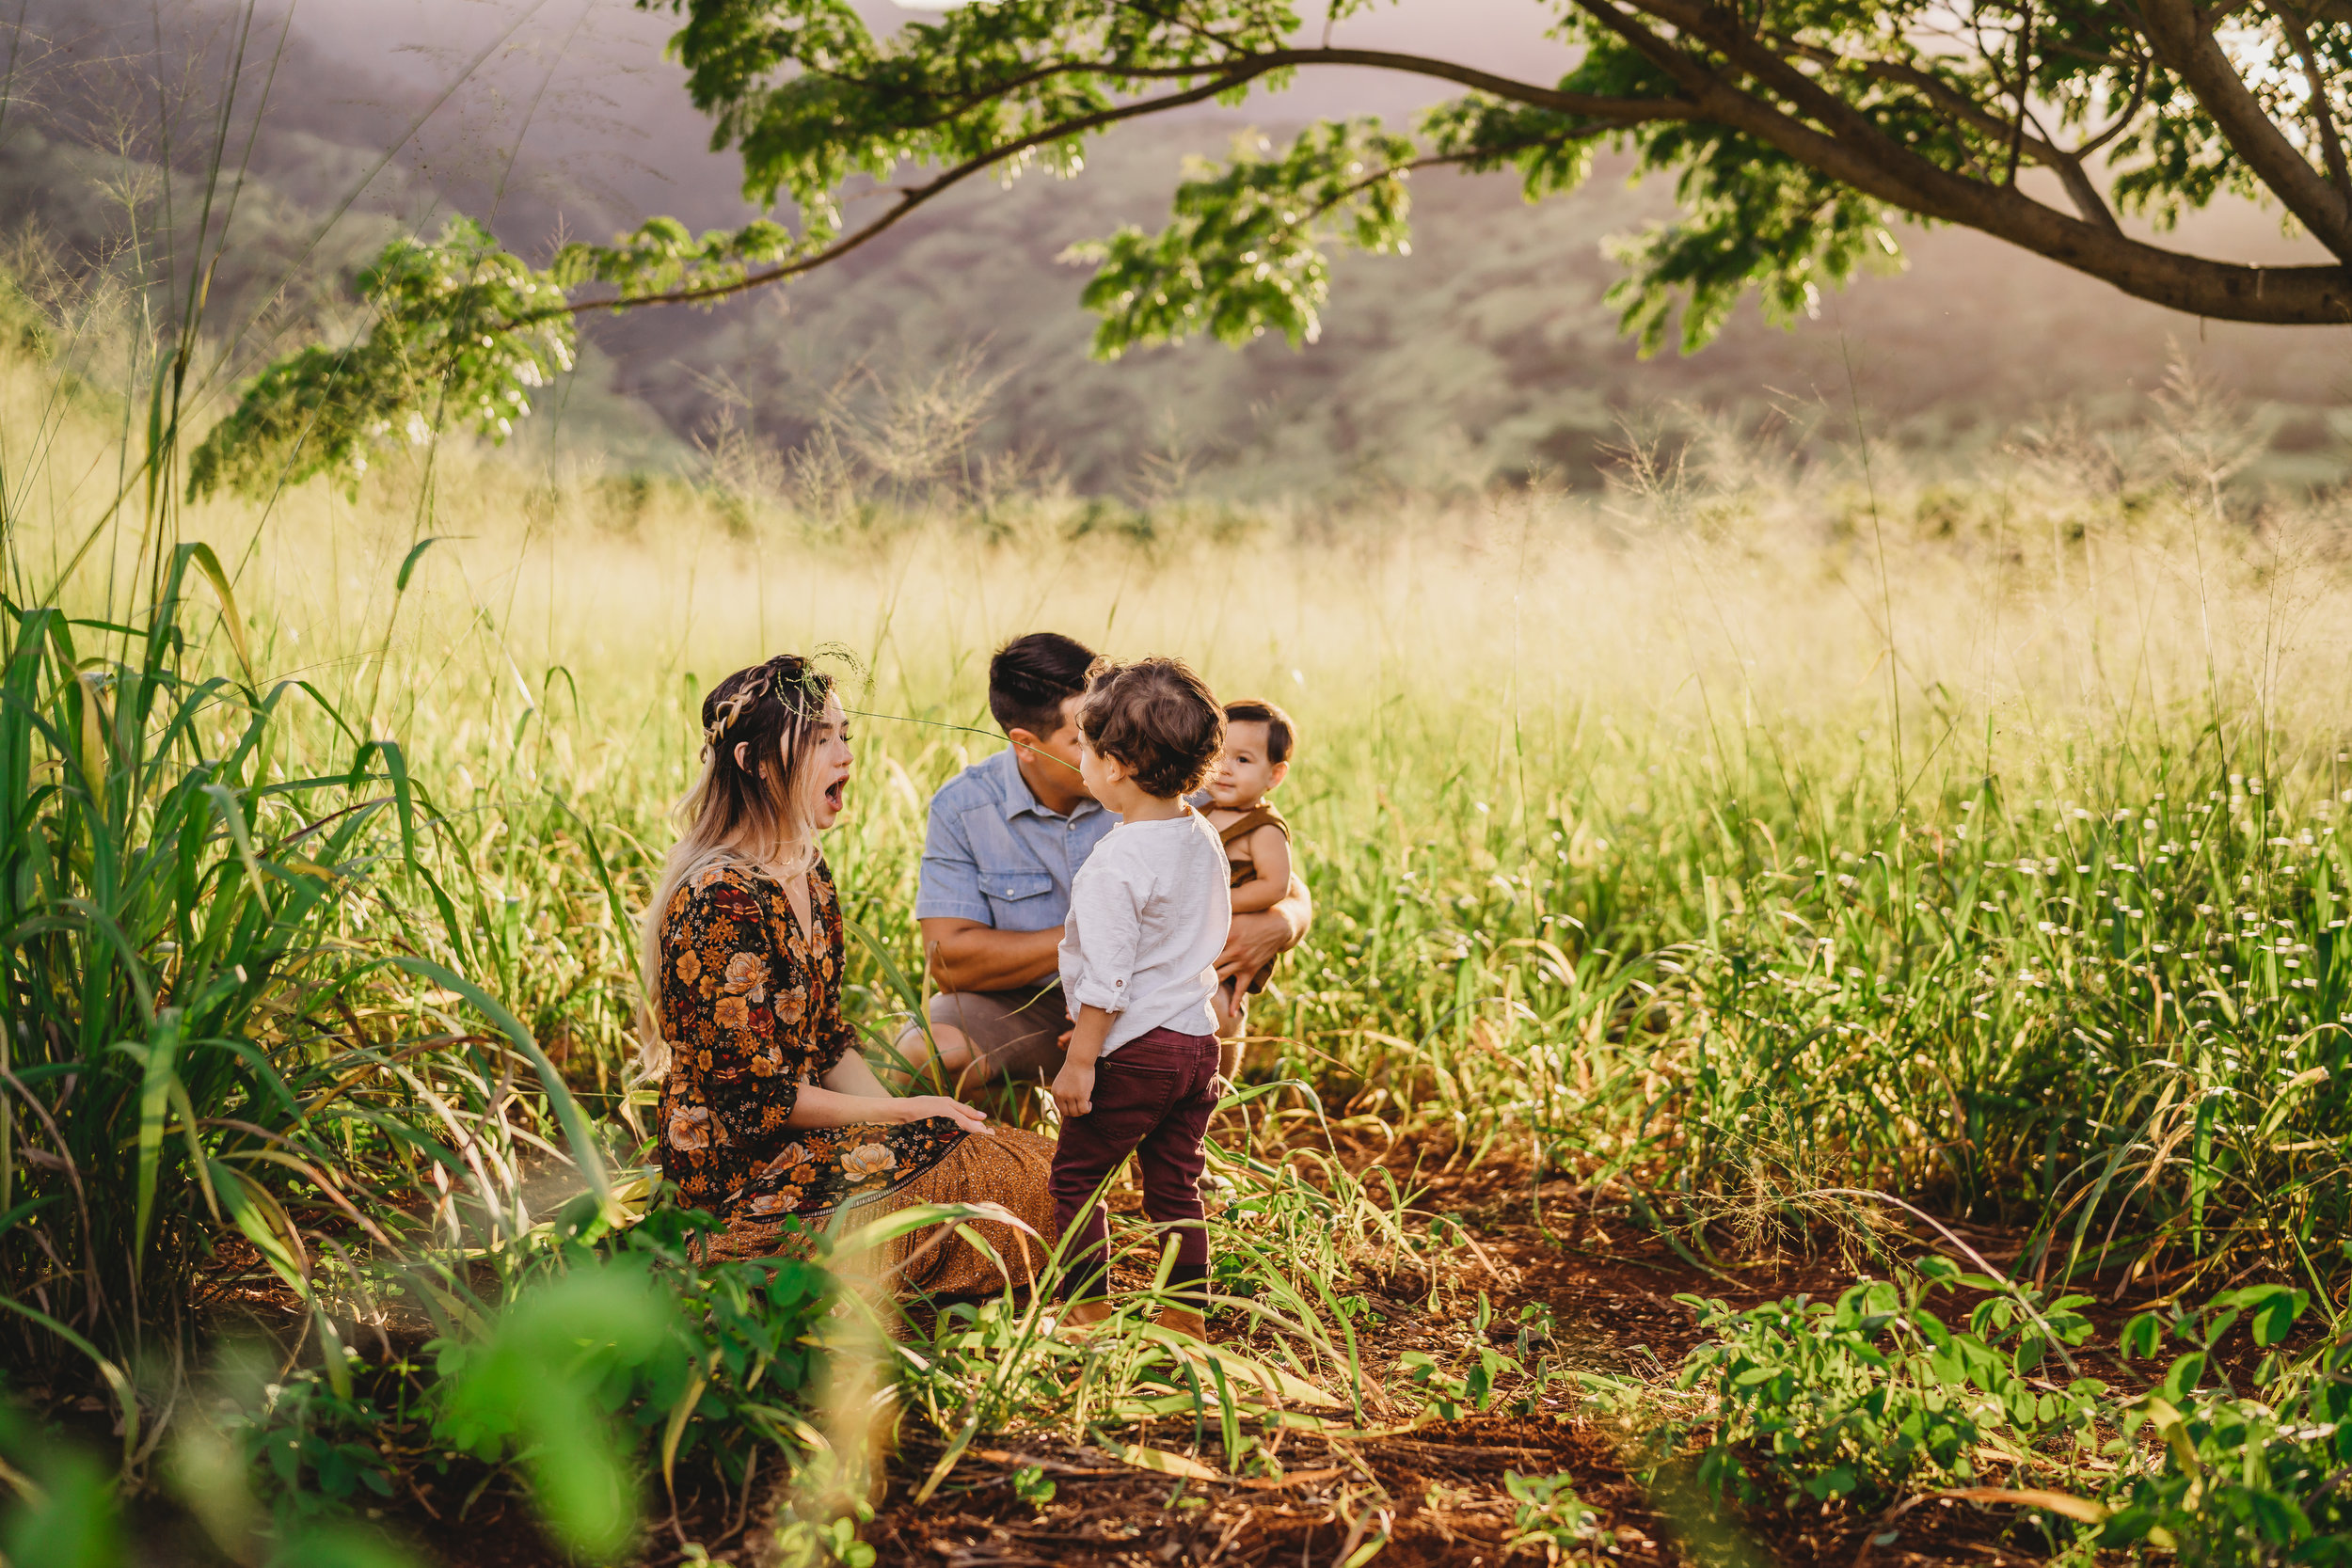 Hawaii-Family-Photographer-Wailua-Beach-Mountain-Rascon-Family35.jpg